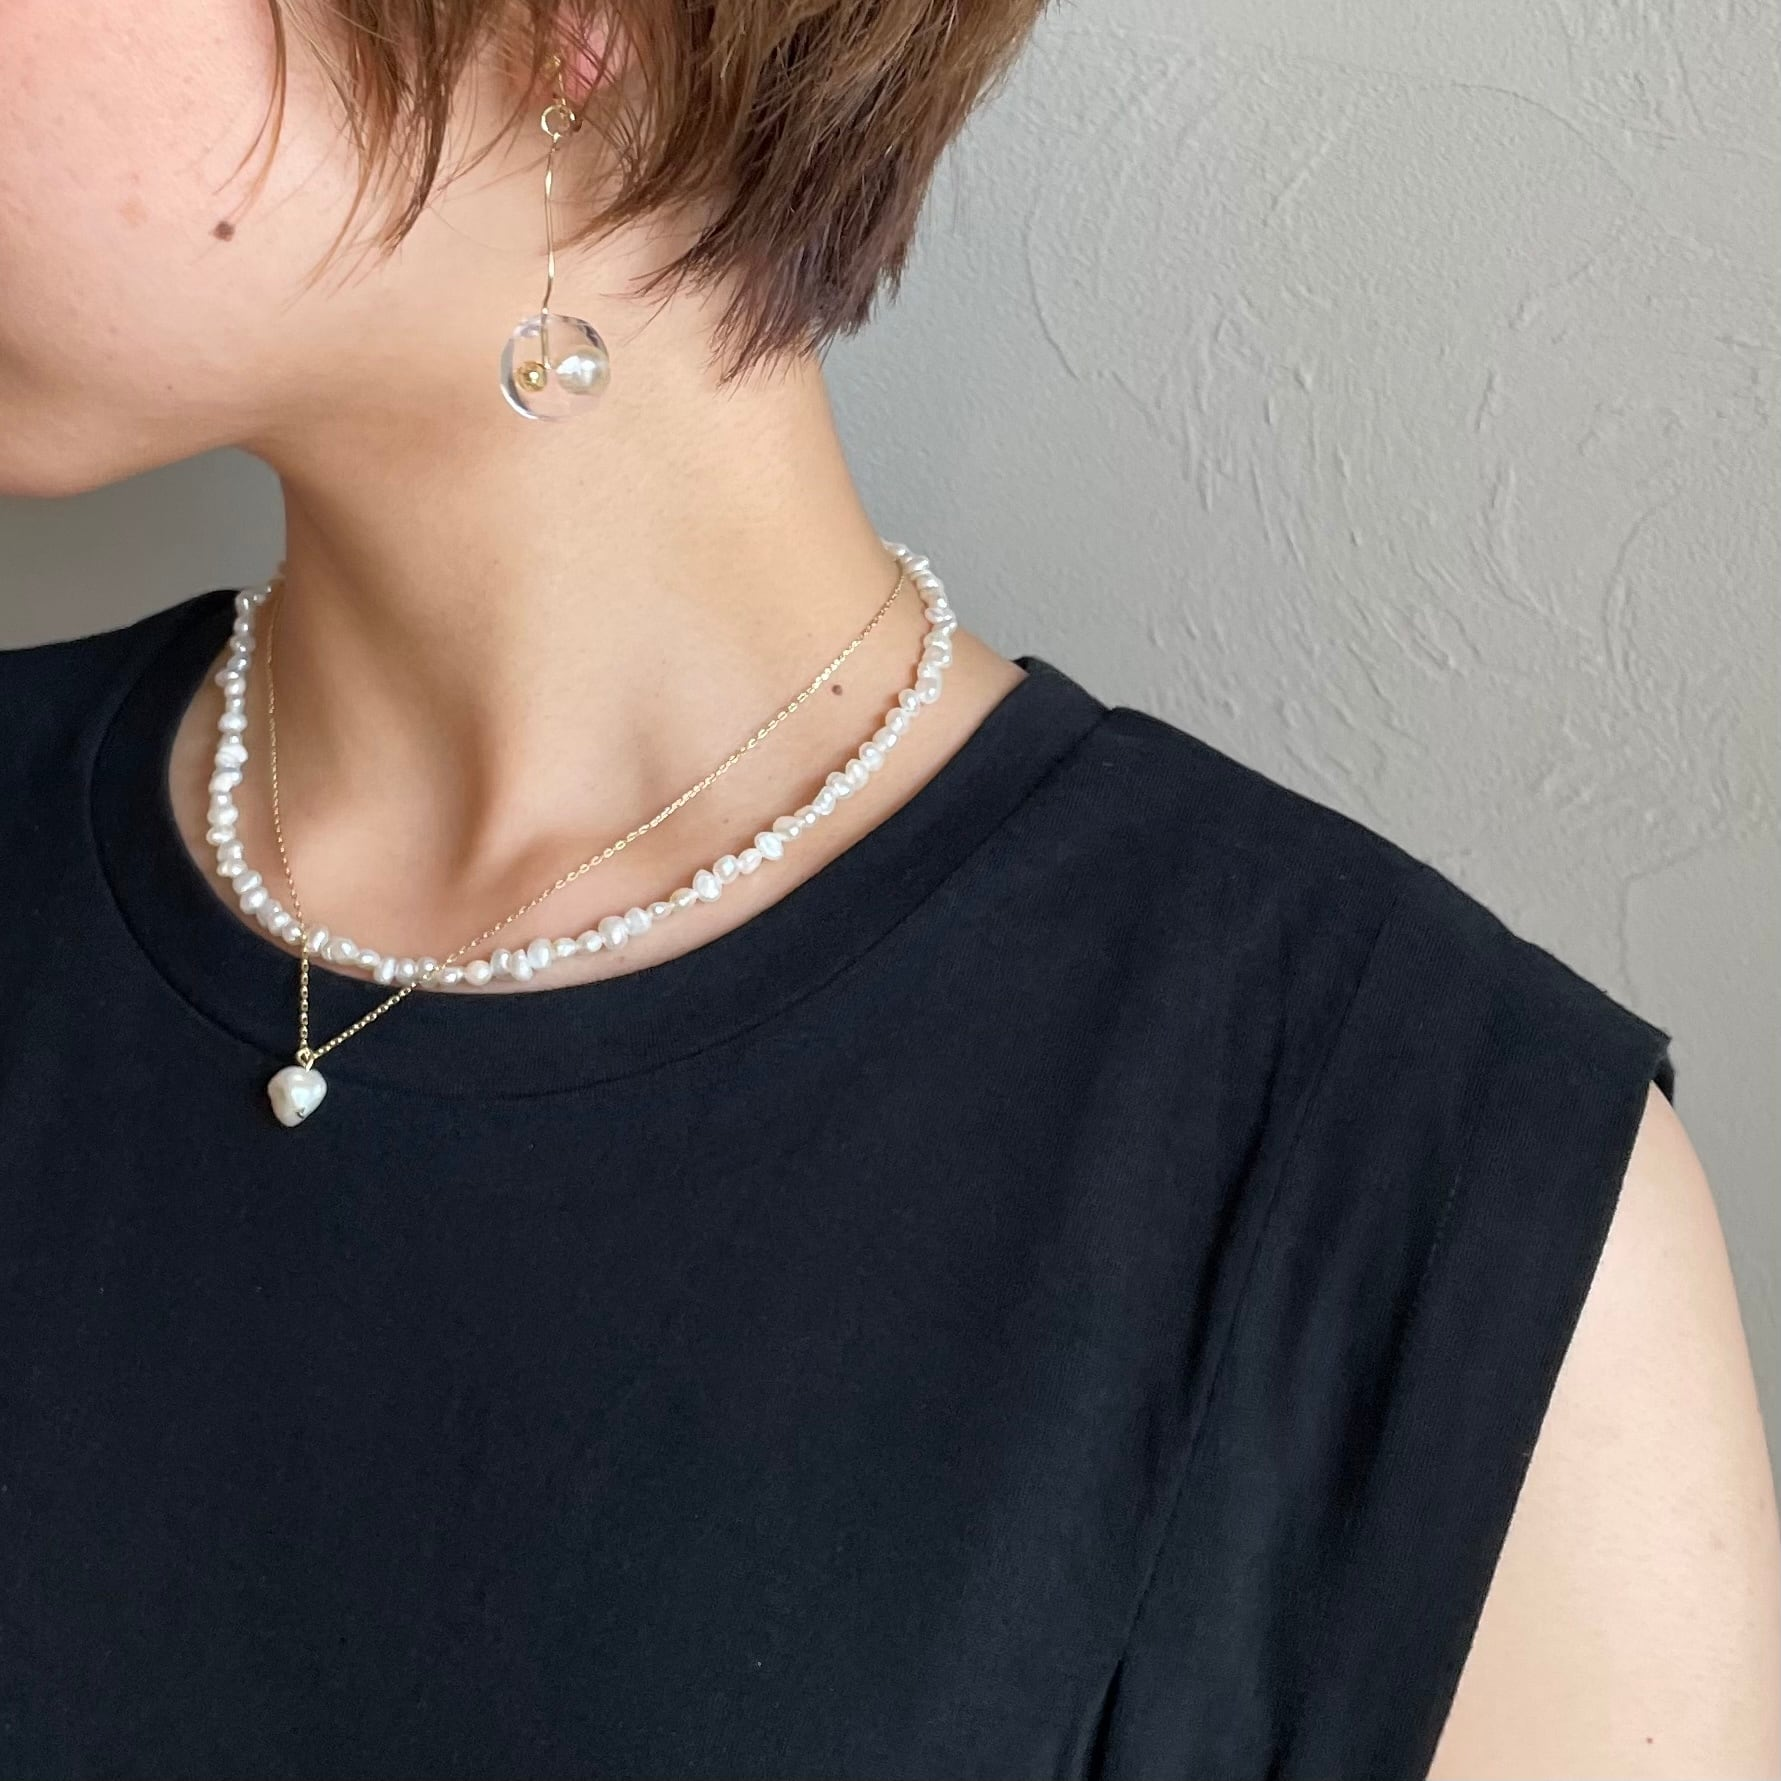 【 acs 】- perl neckless